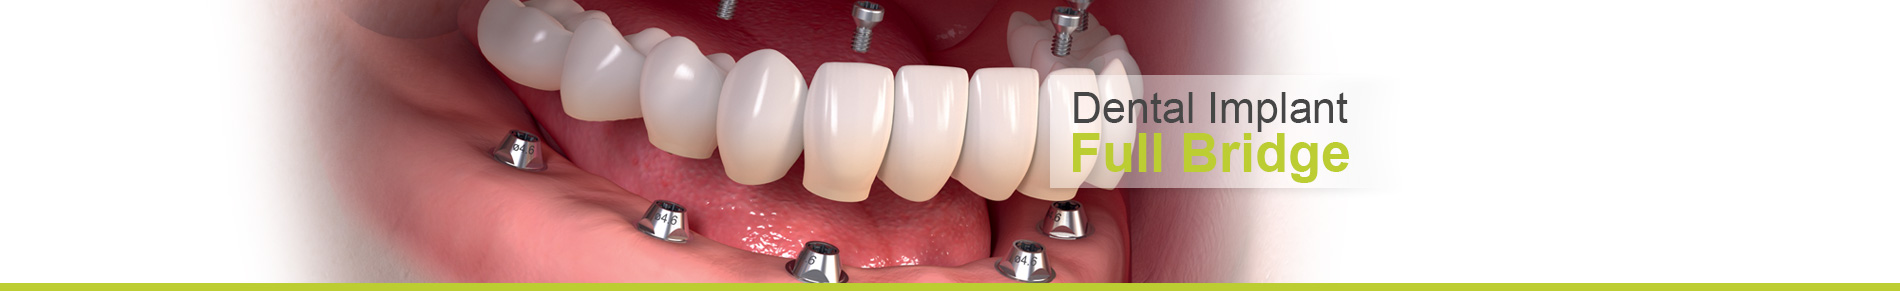 Phuket Dental Implant